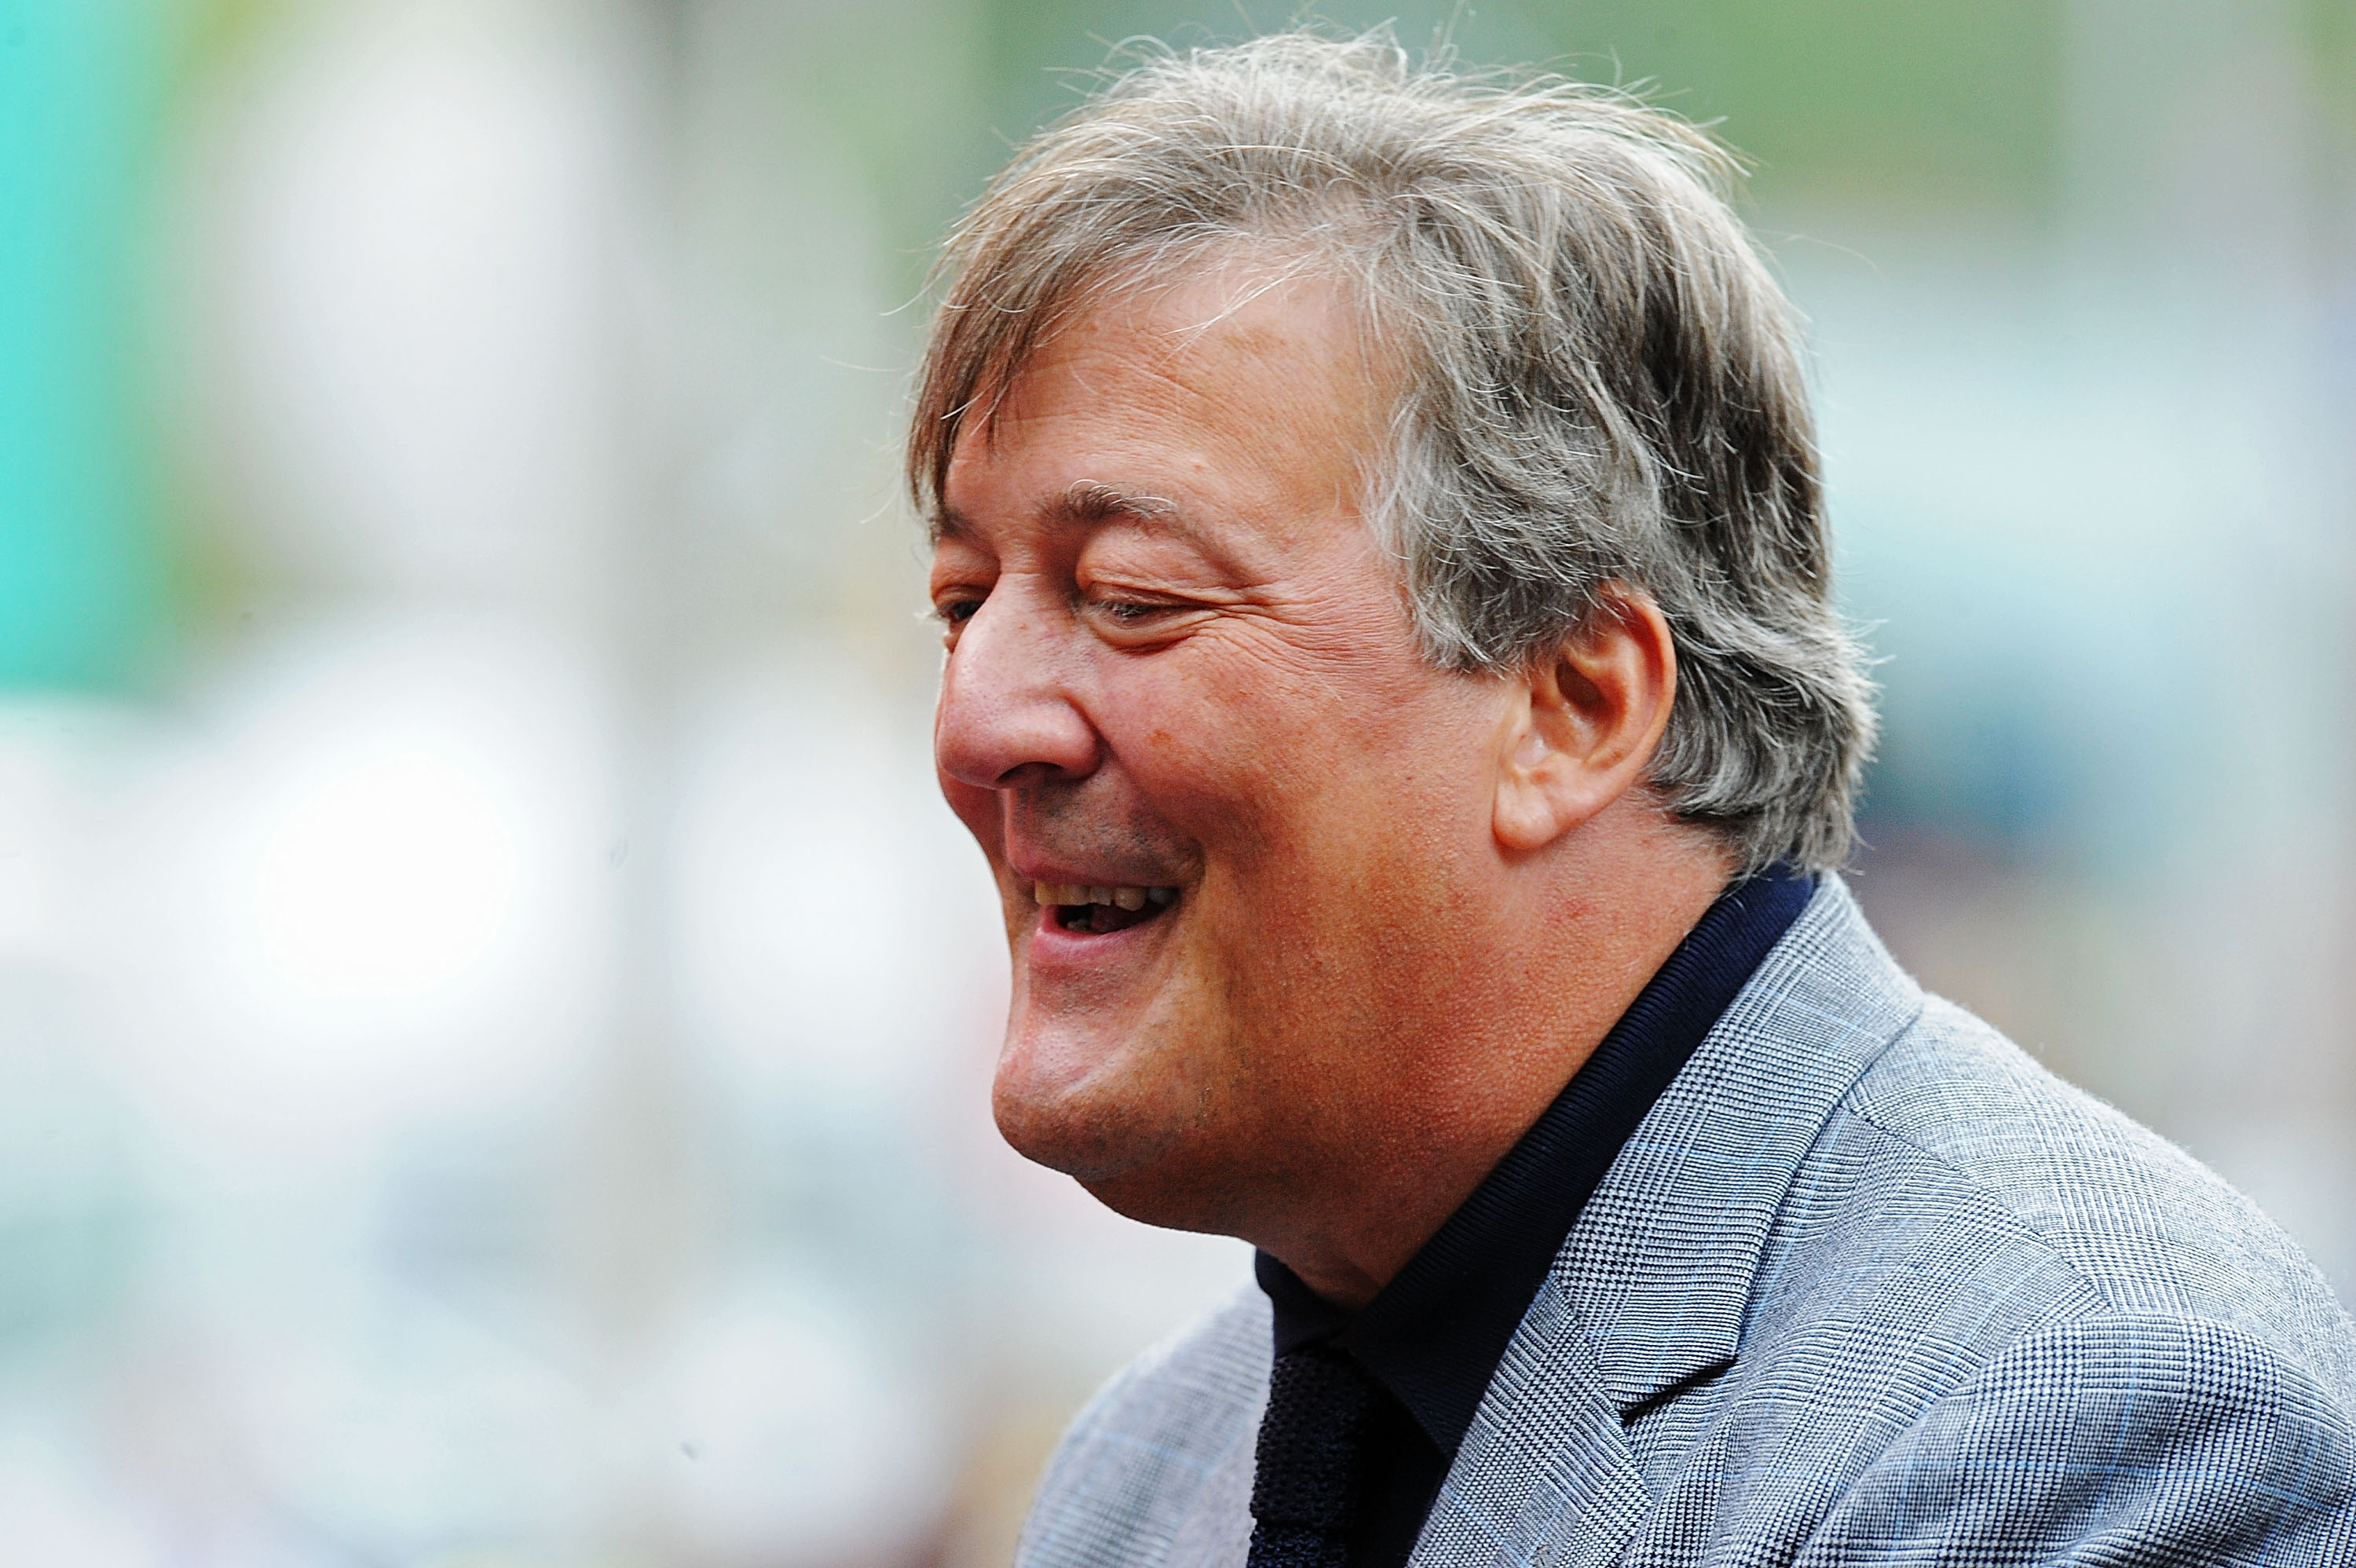 Stephen Fry Wallpapers